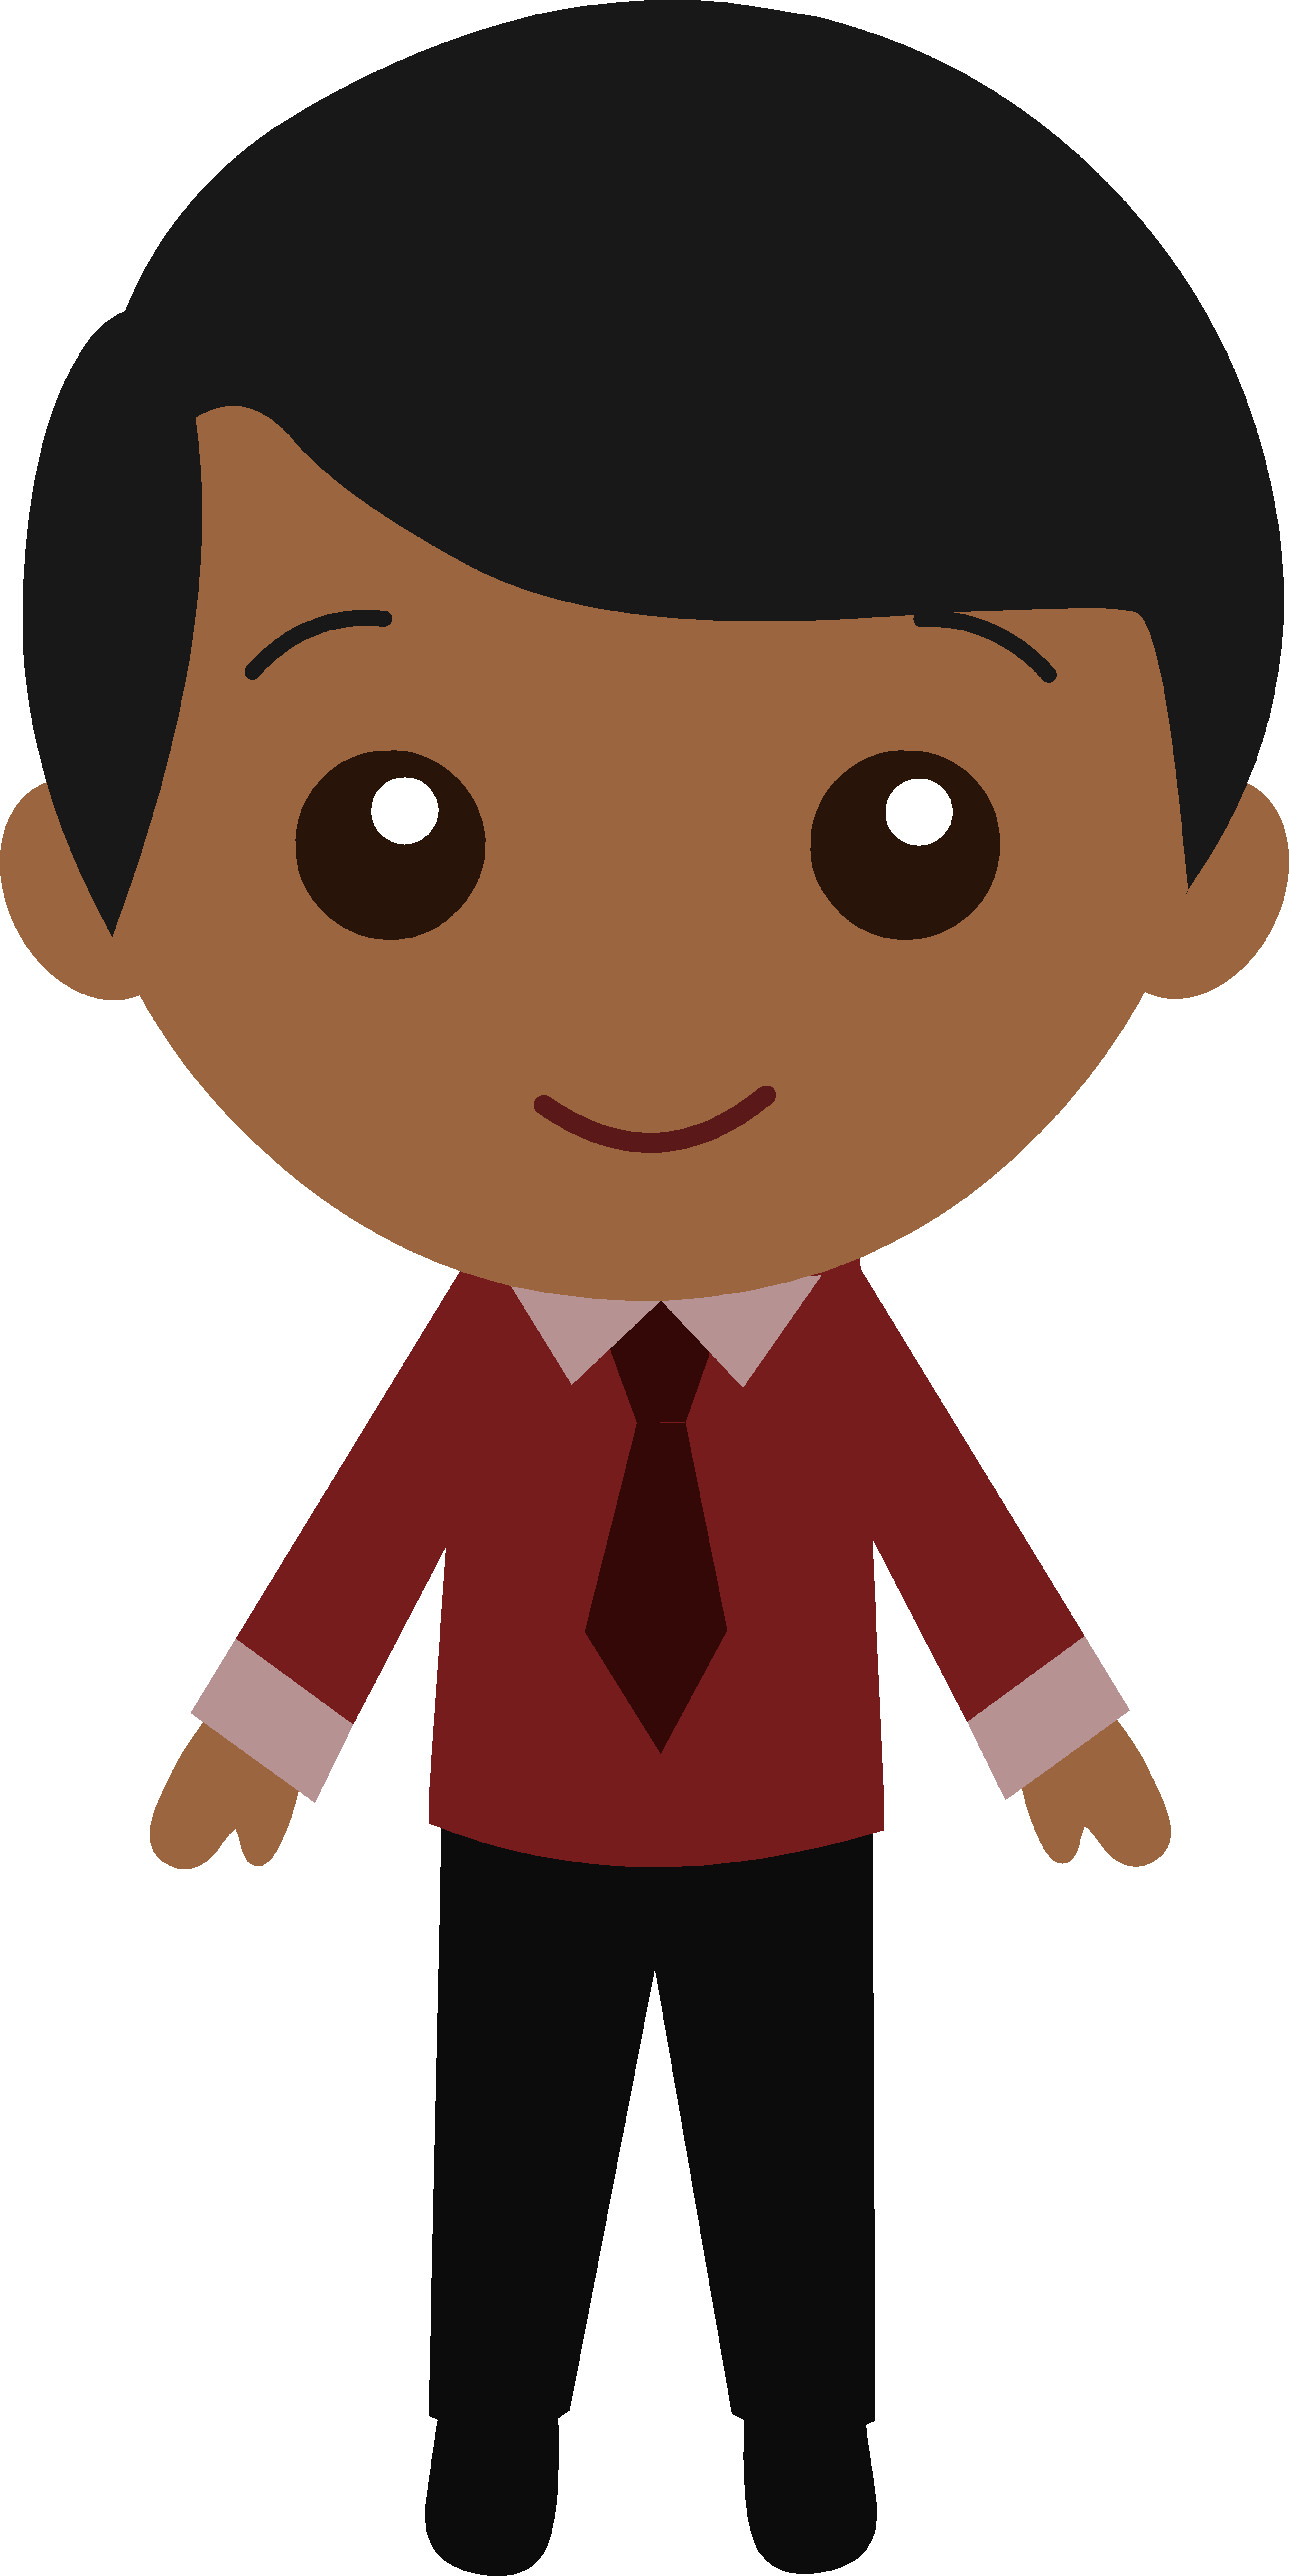 Thin dark haired boy clipart.